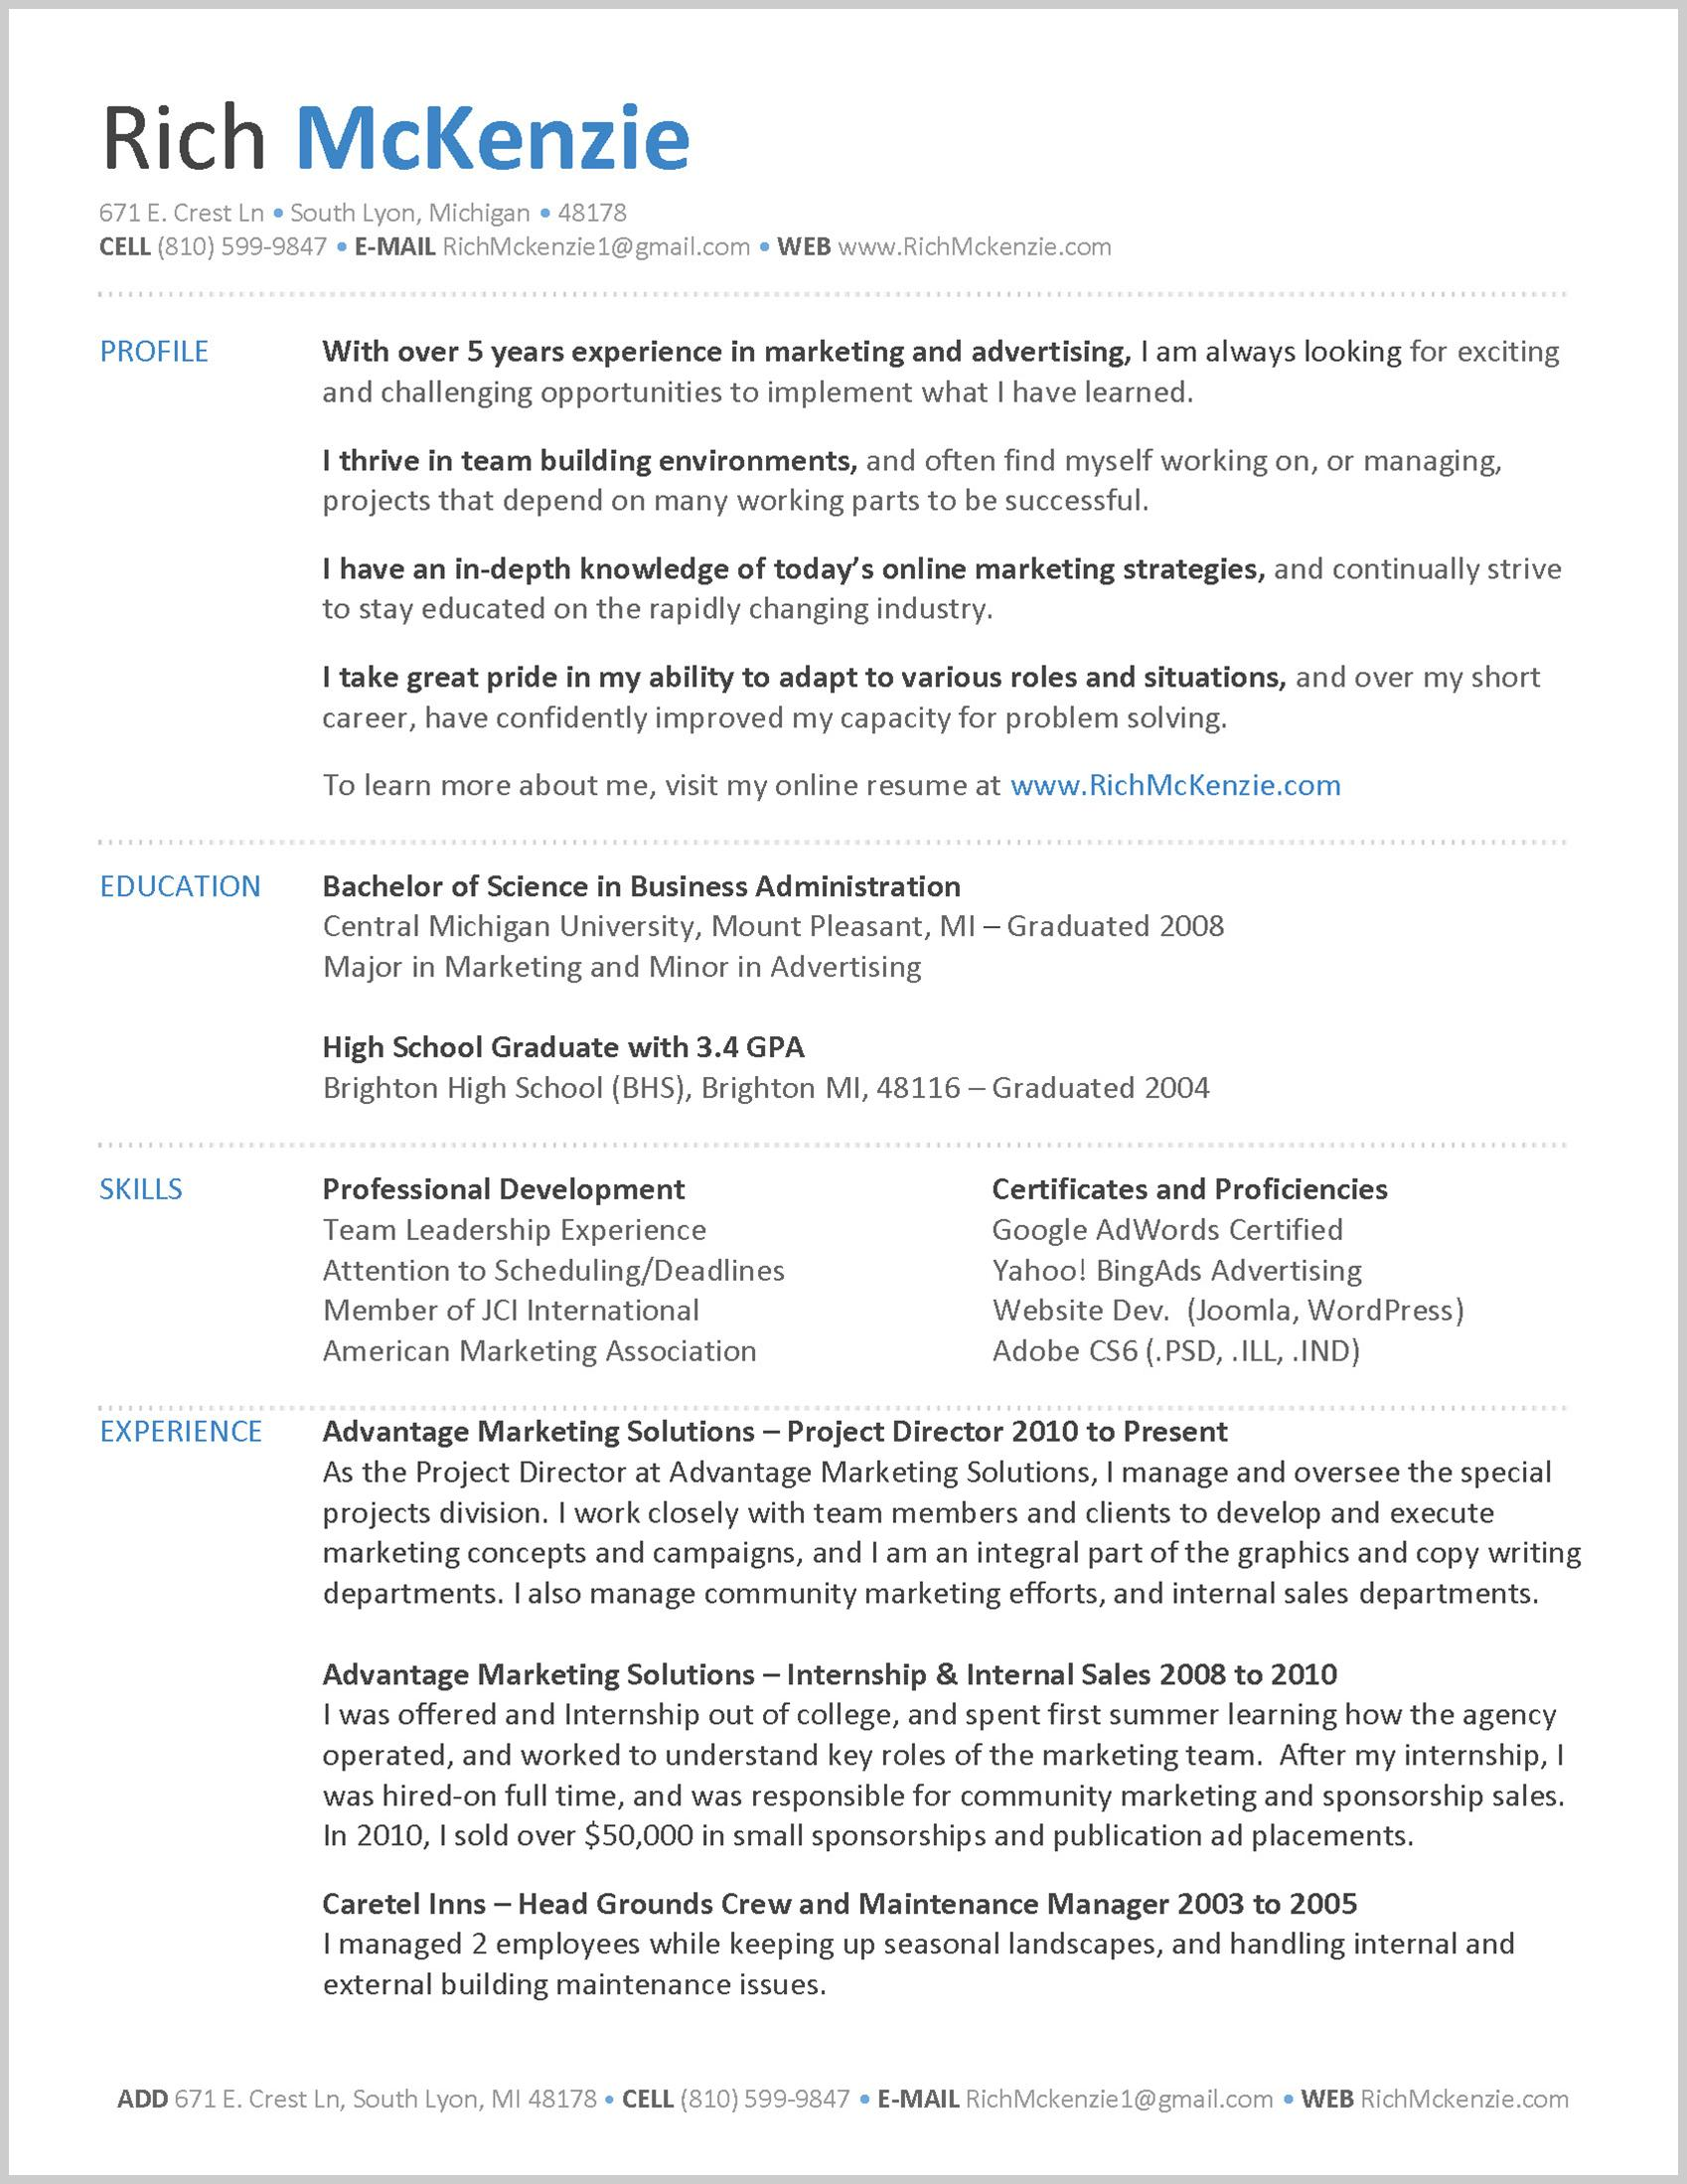 ucr resume builder resume postings free resume postings resume maker online free resume postings online resume - Resume Builder Online Free Download